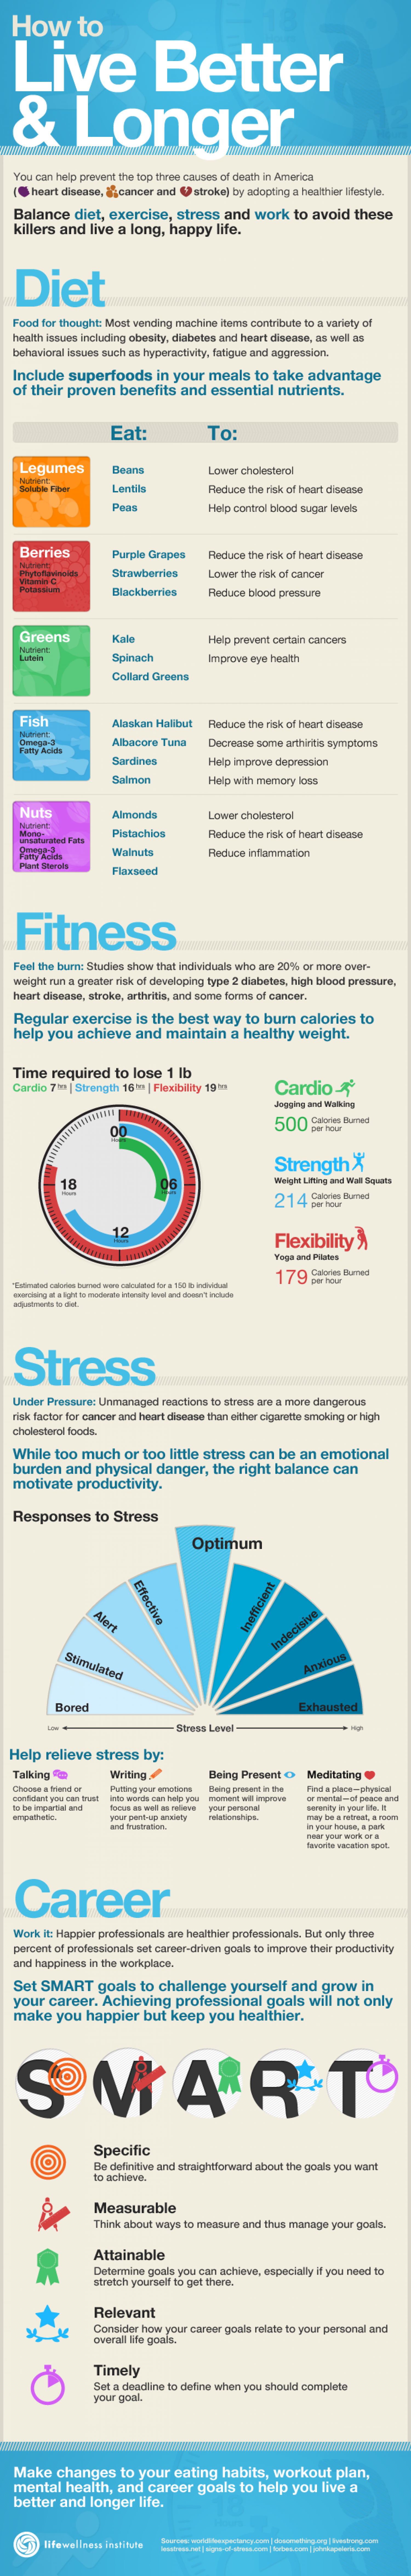 How to Live Better & Longer Infographic